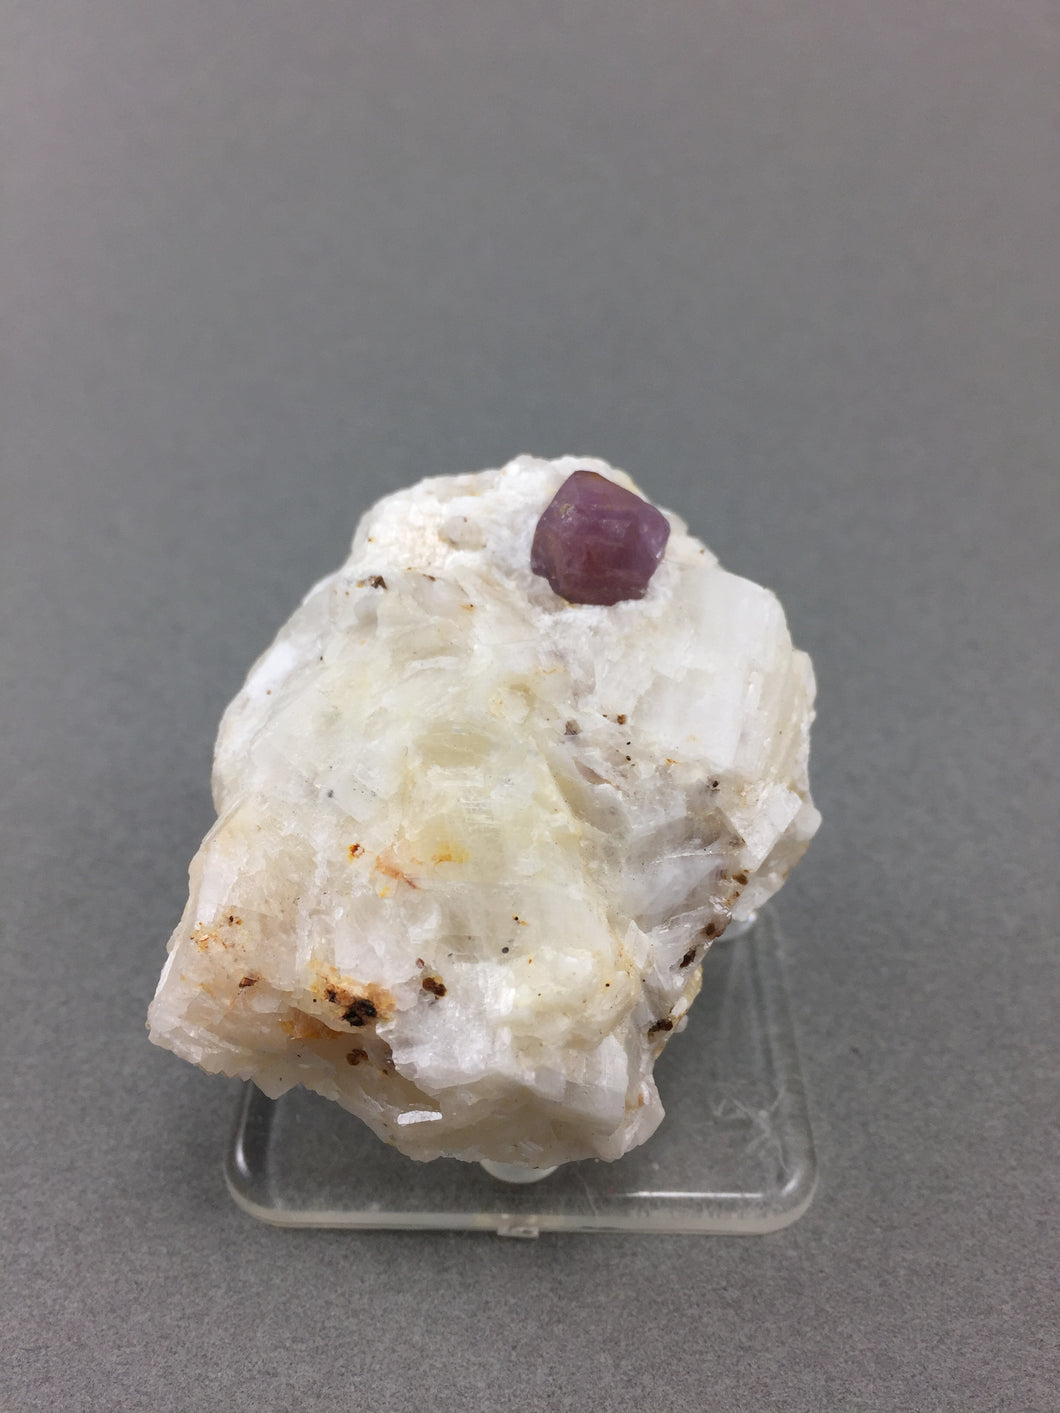 Purple Spinel on matrix from Hunza Valley, Pakistan